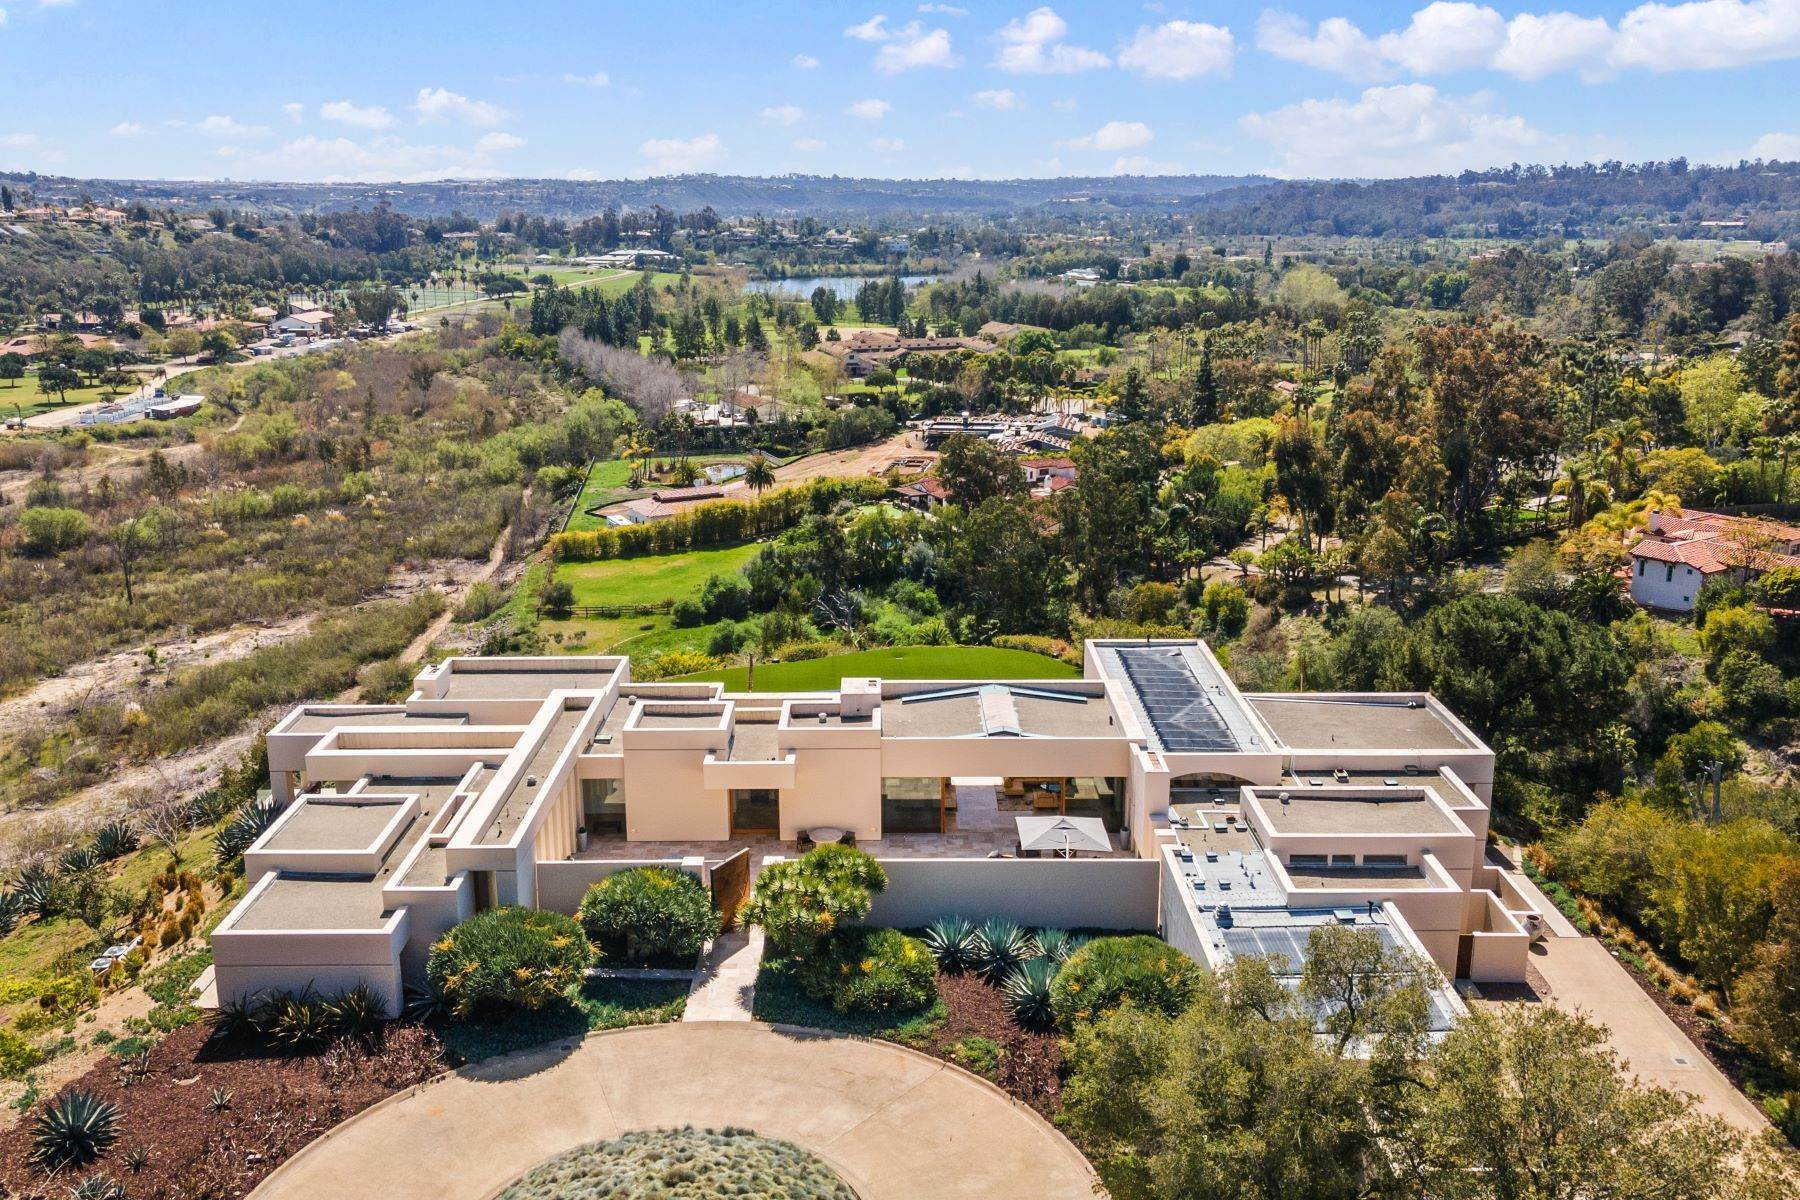 46. Single Family Homes for Sale at Wallace Cunningham's Promontory of Rancho Santa Fe! 16528 Los Barbos Rancho Santa Fe, California 92067 United States